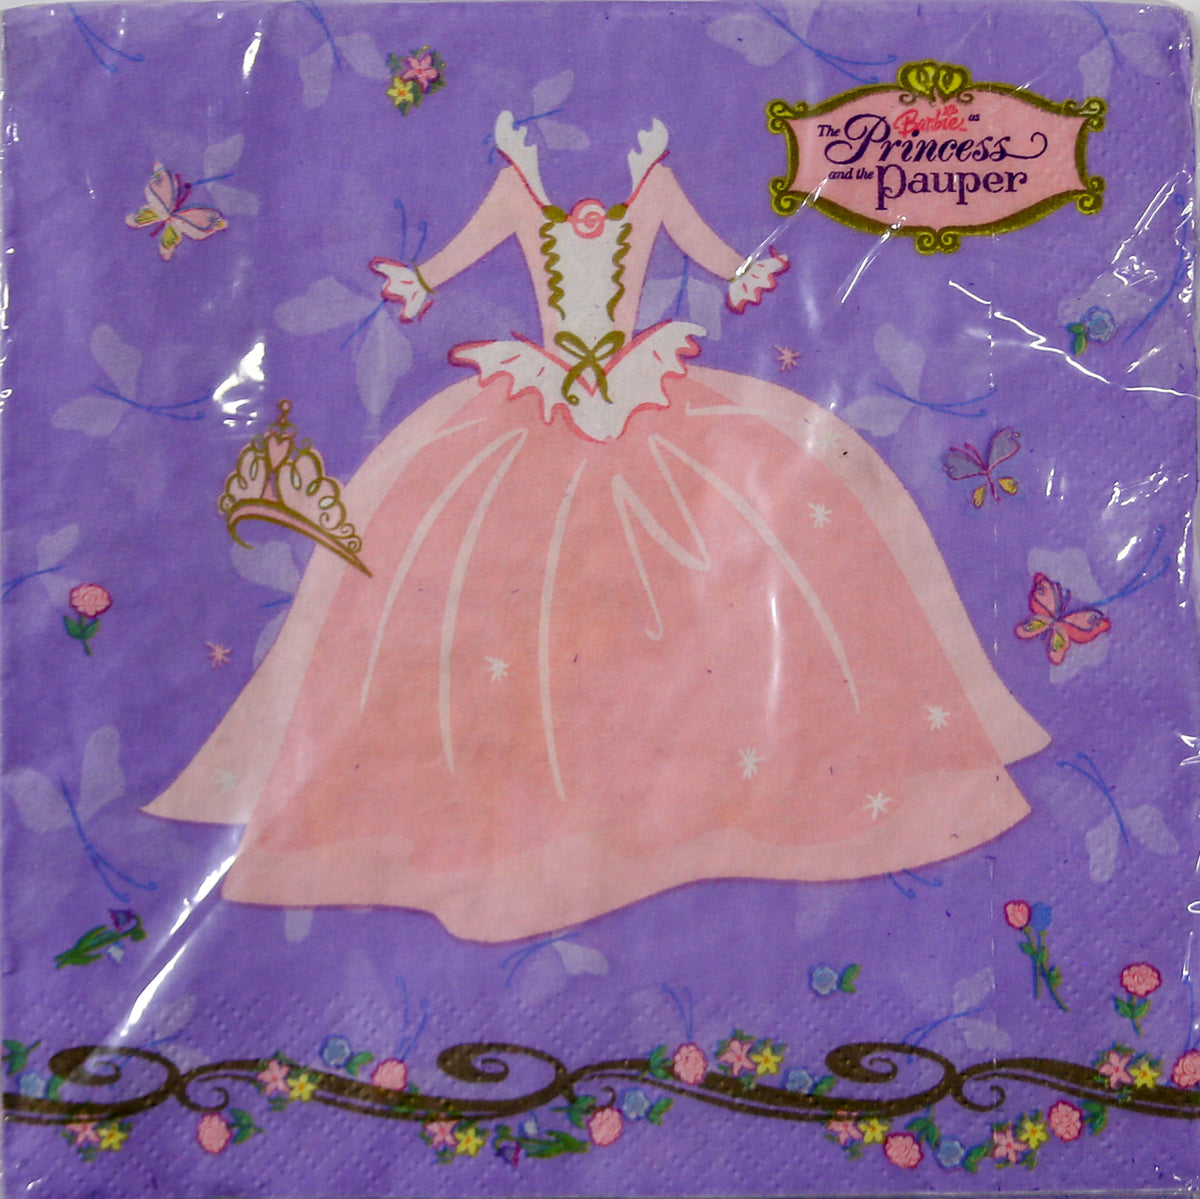 Barbie The Princess and the Pauper Luncheon Napkins